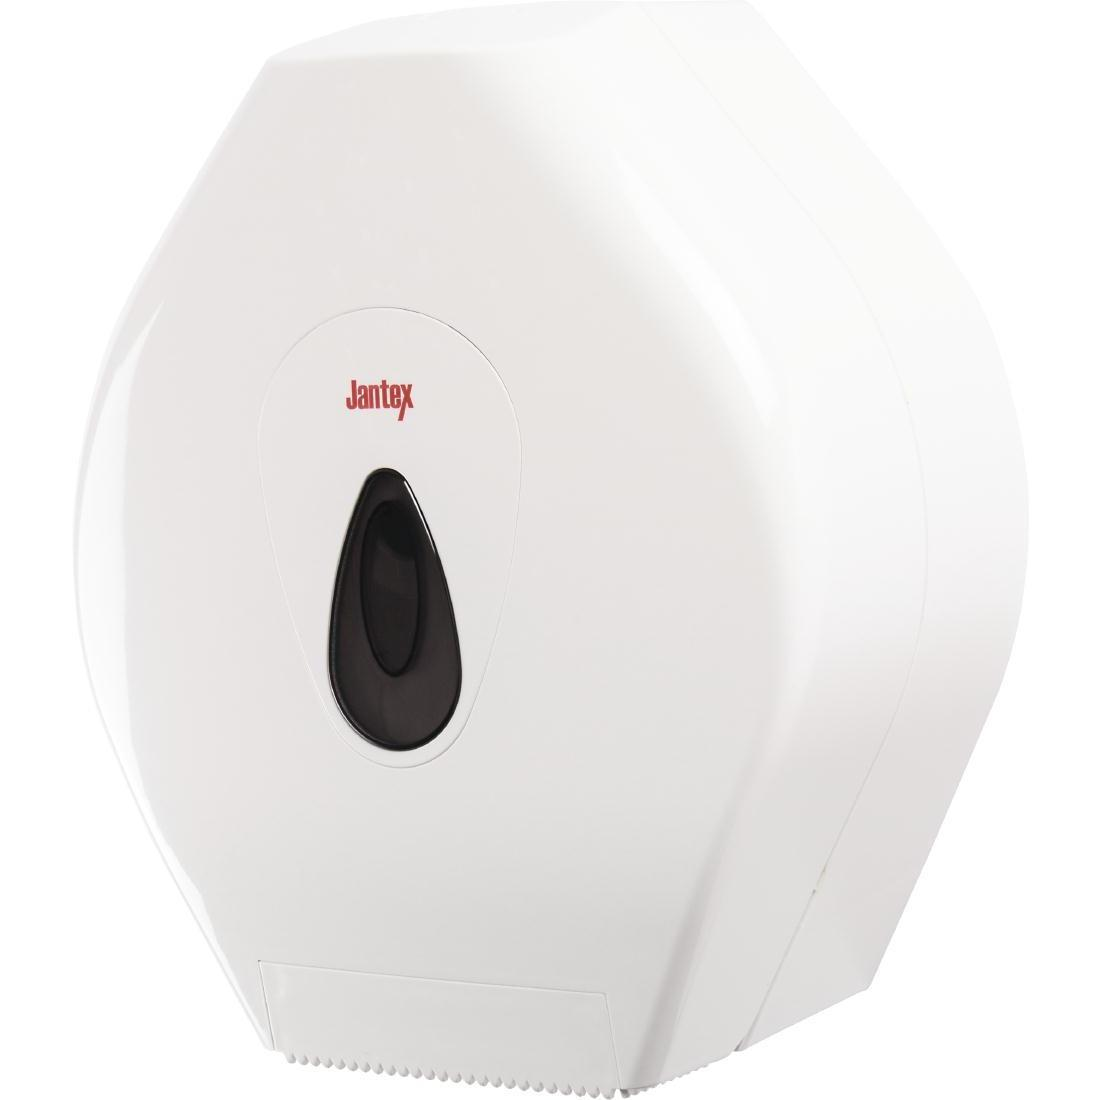 Jantex Jumbo Tissue Dispenser